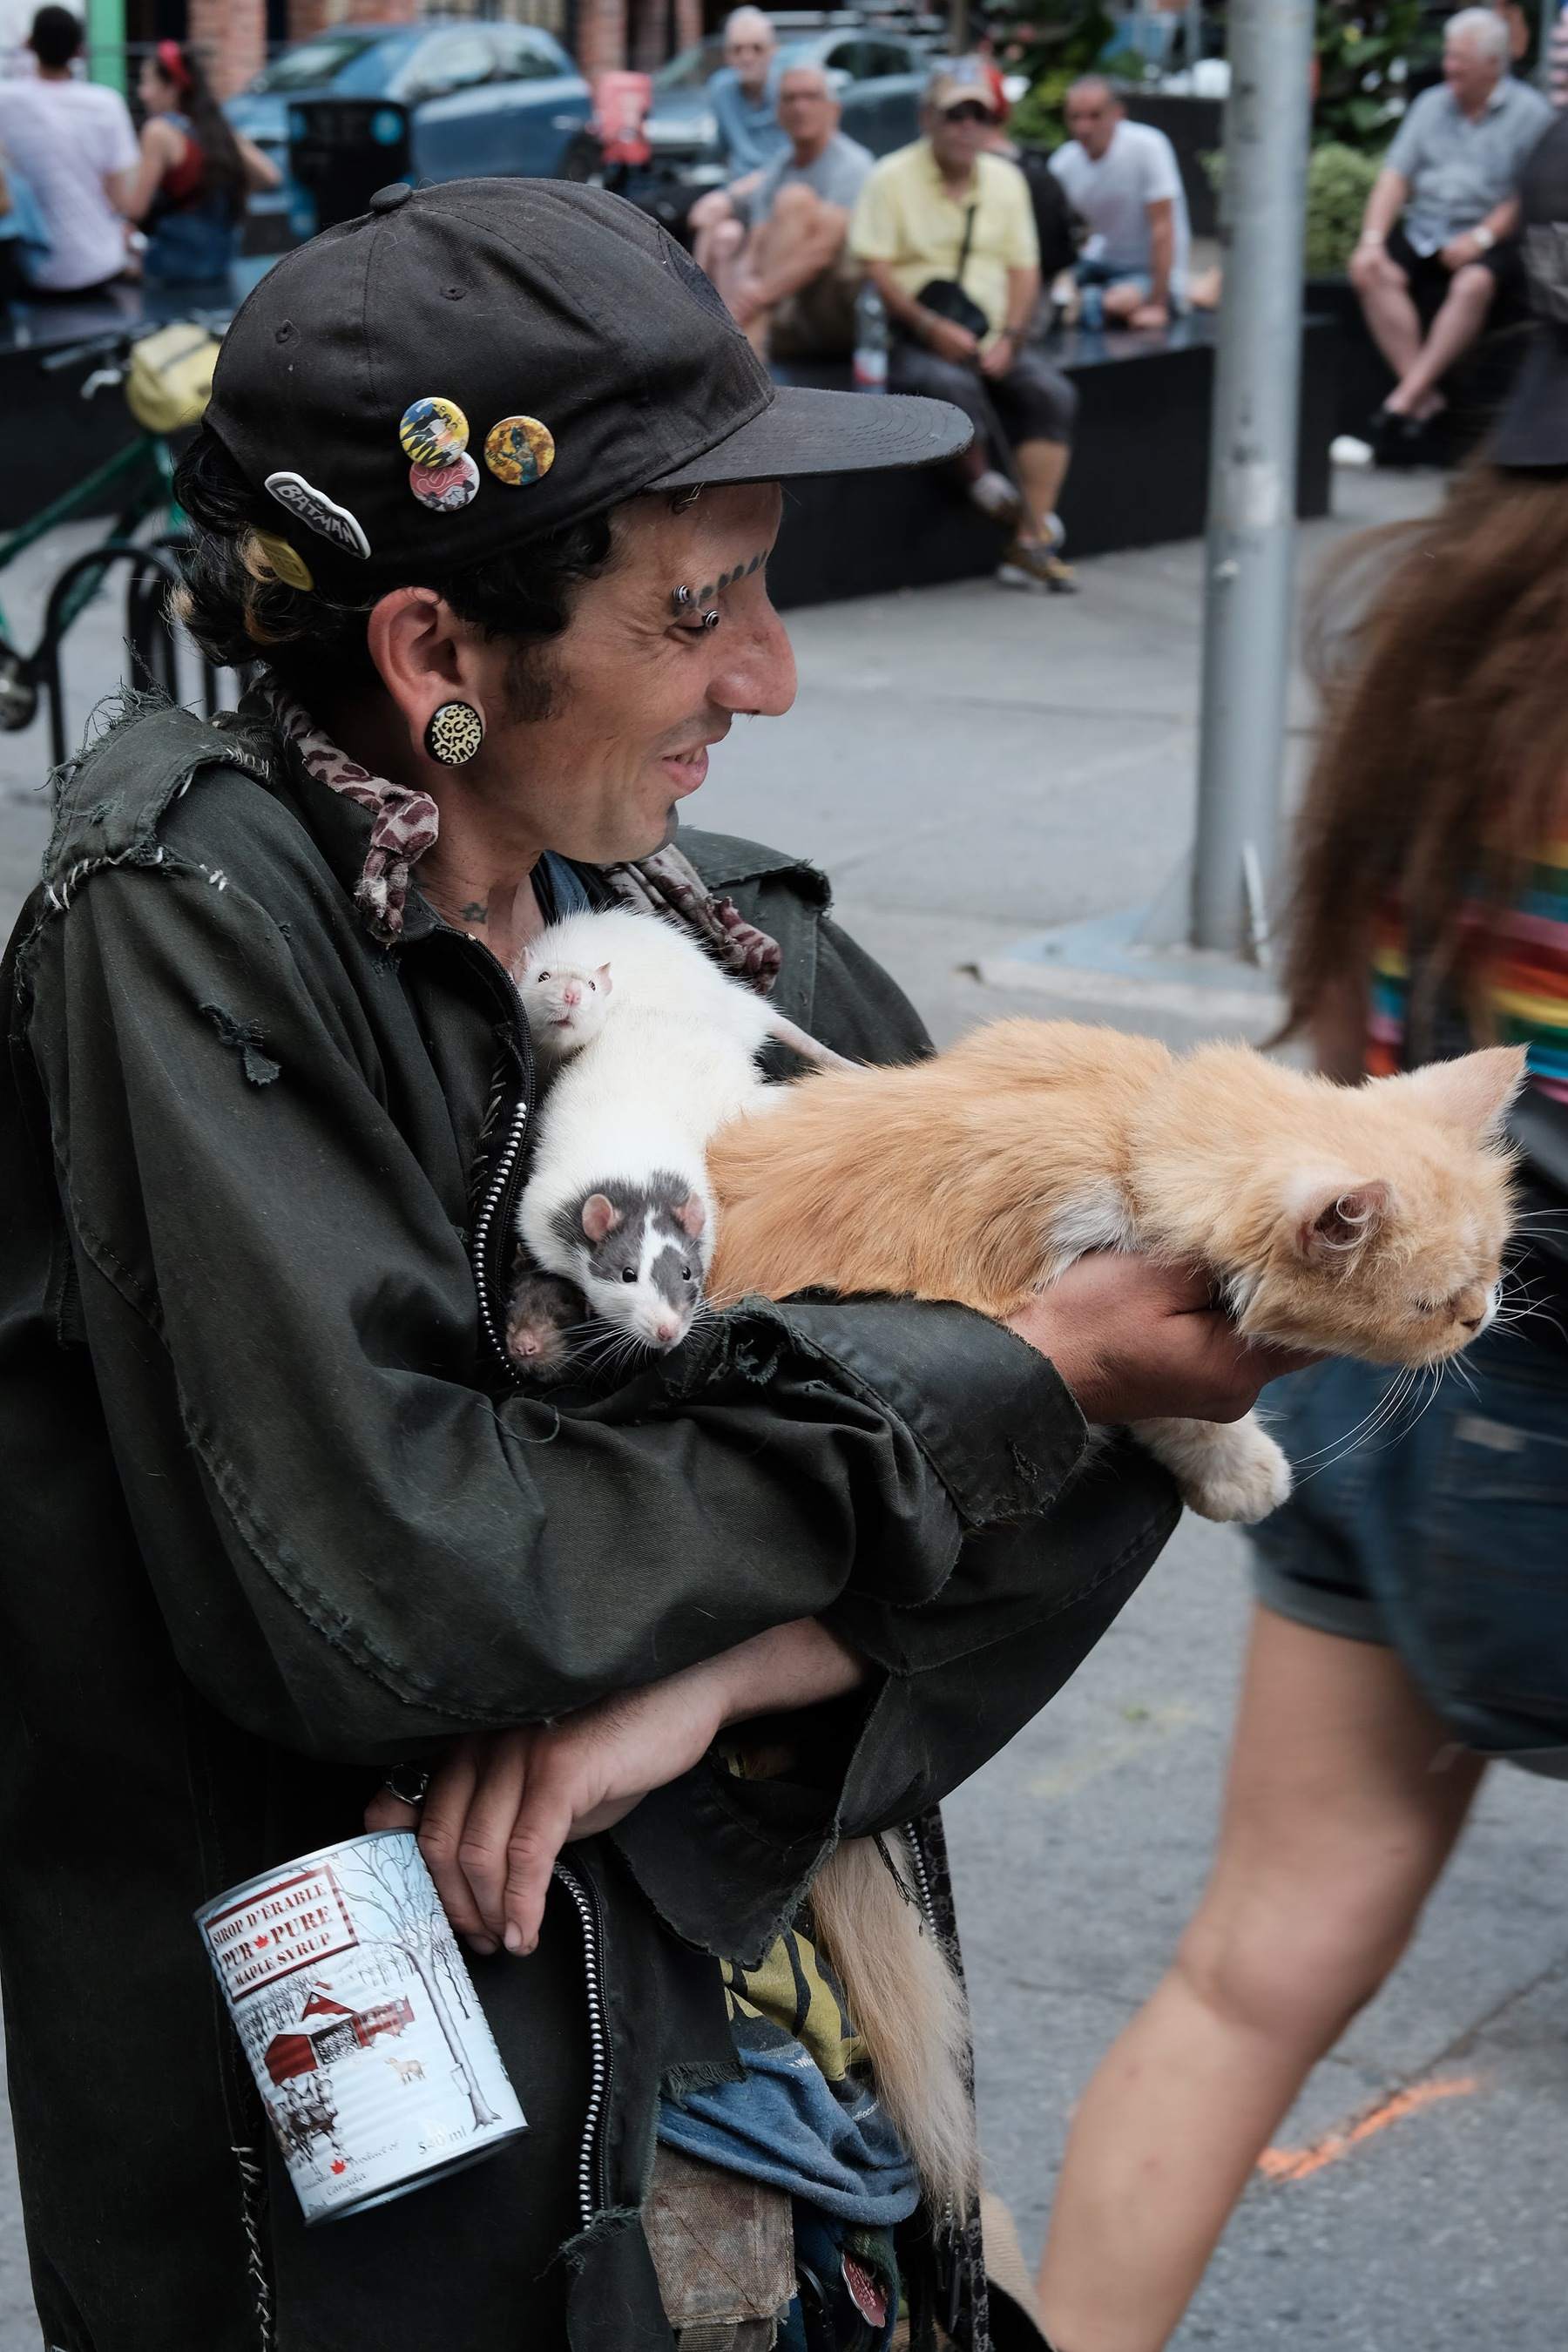 A man holding three pet rats and a cat is busking with an empty maple syrup can